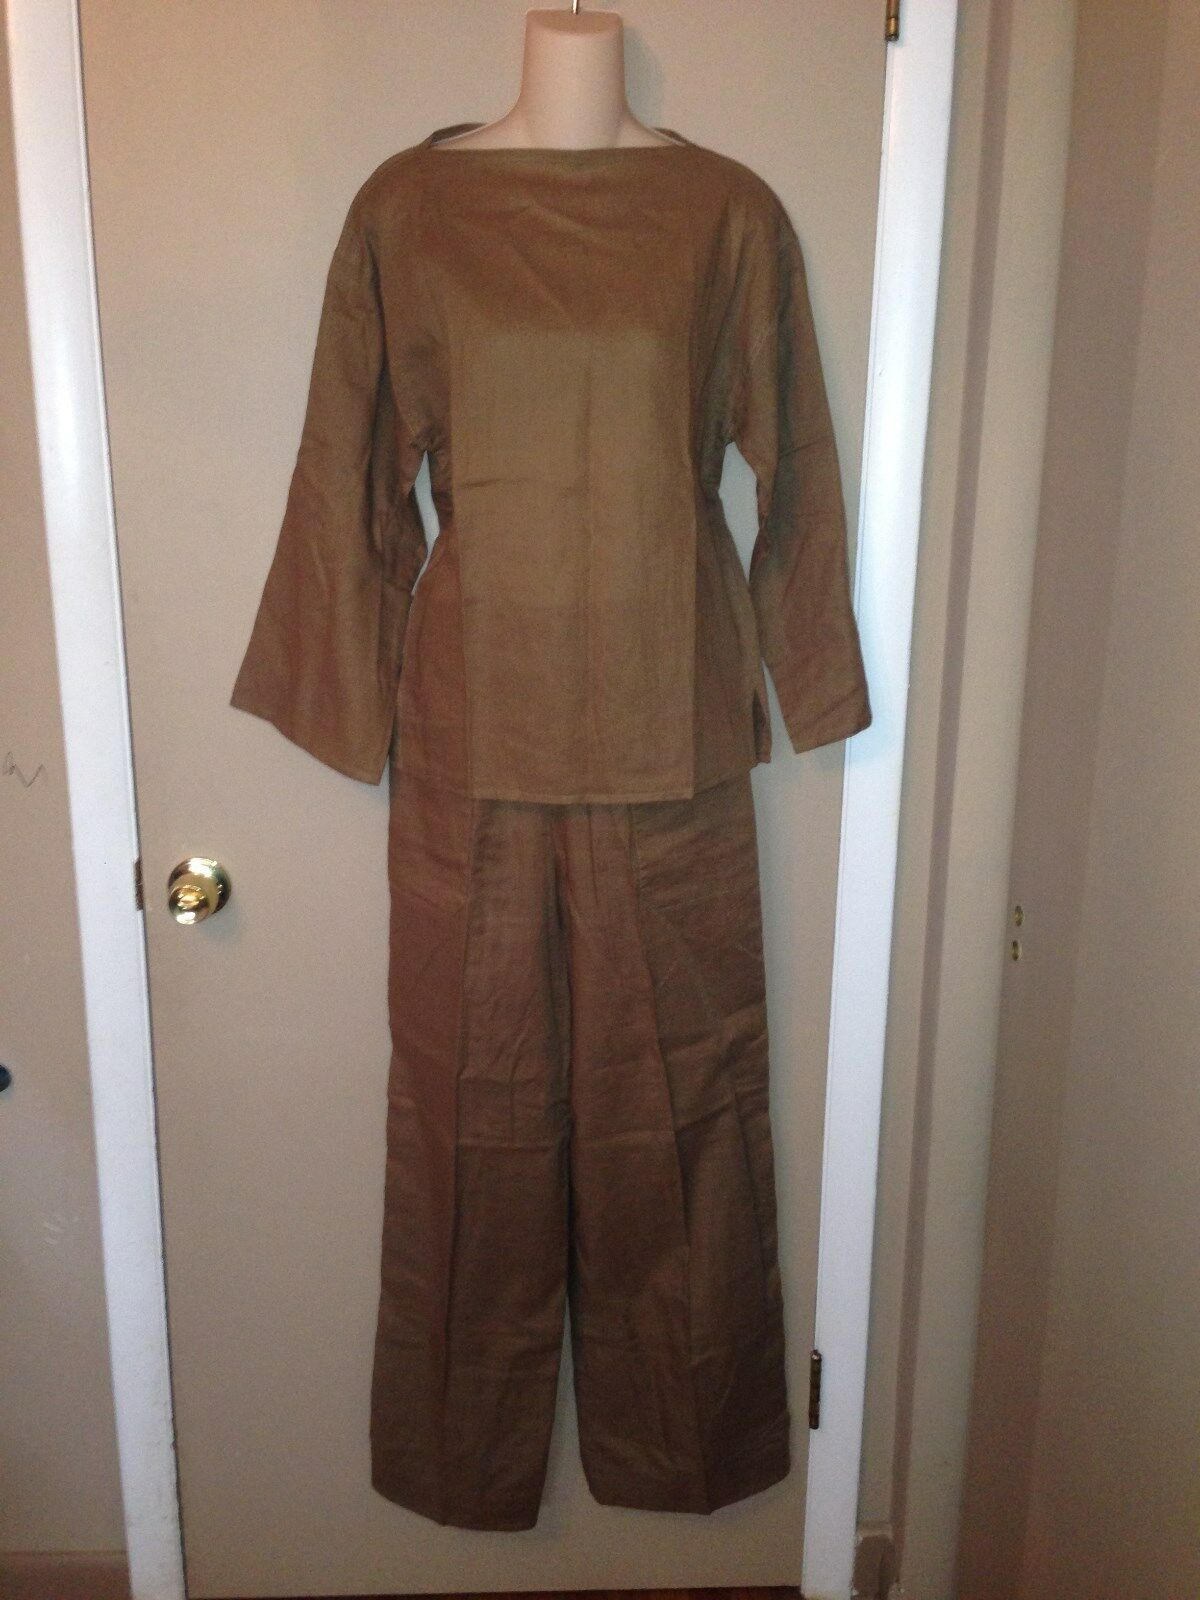 CHRISTIAN DIOR LADIES LINEN SET BLOUSE AND PANTS Größe 8 AND 10